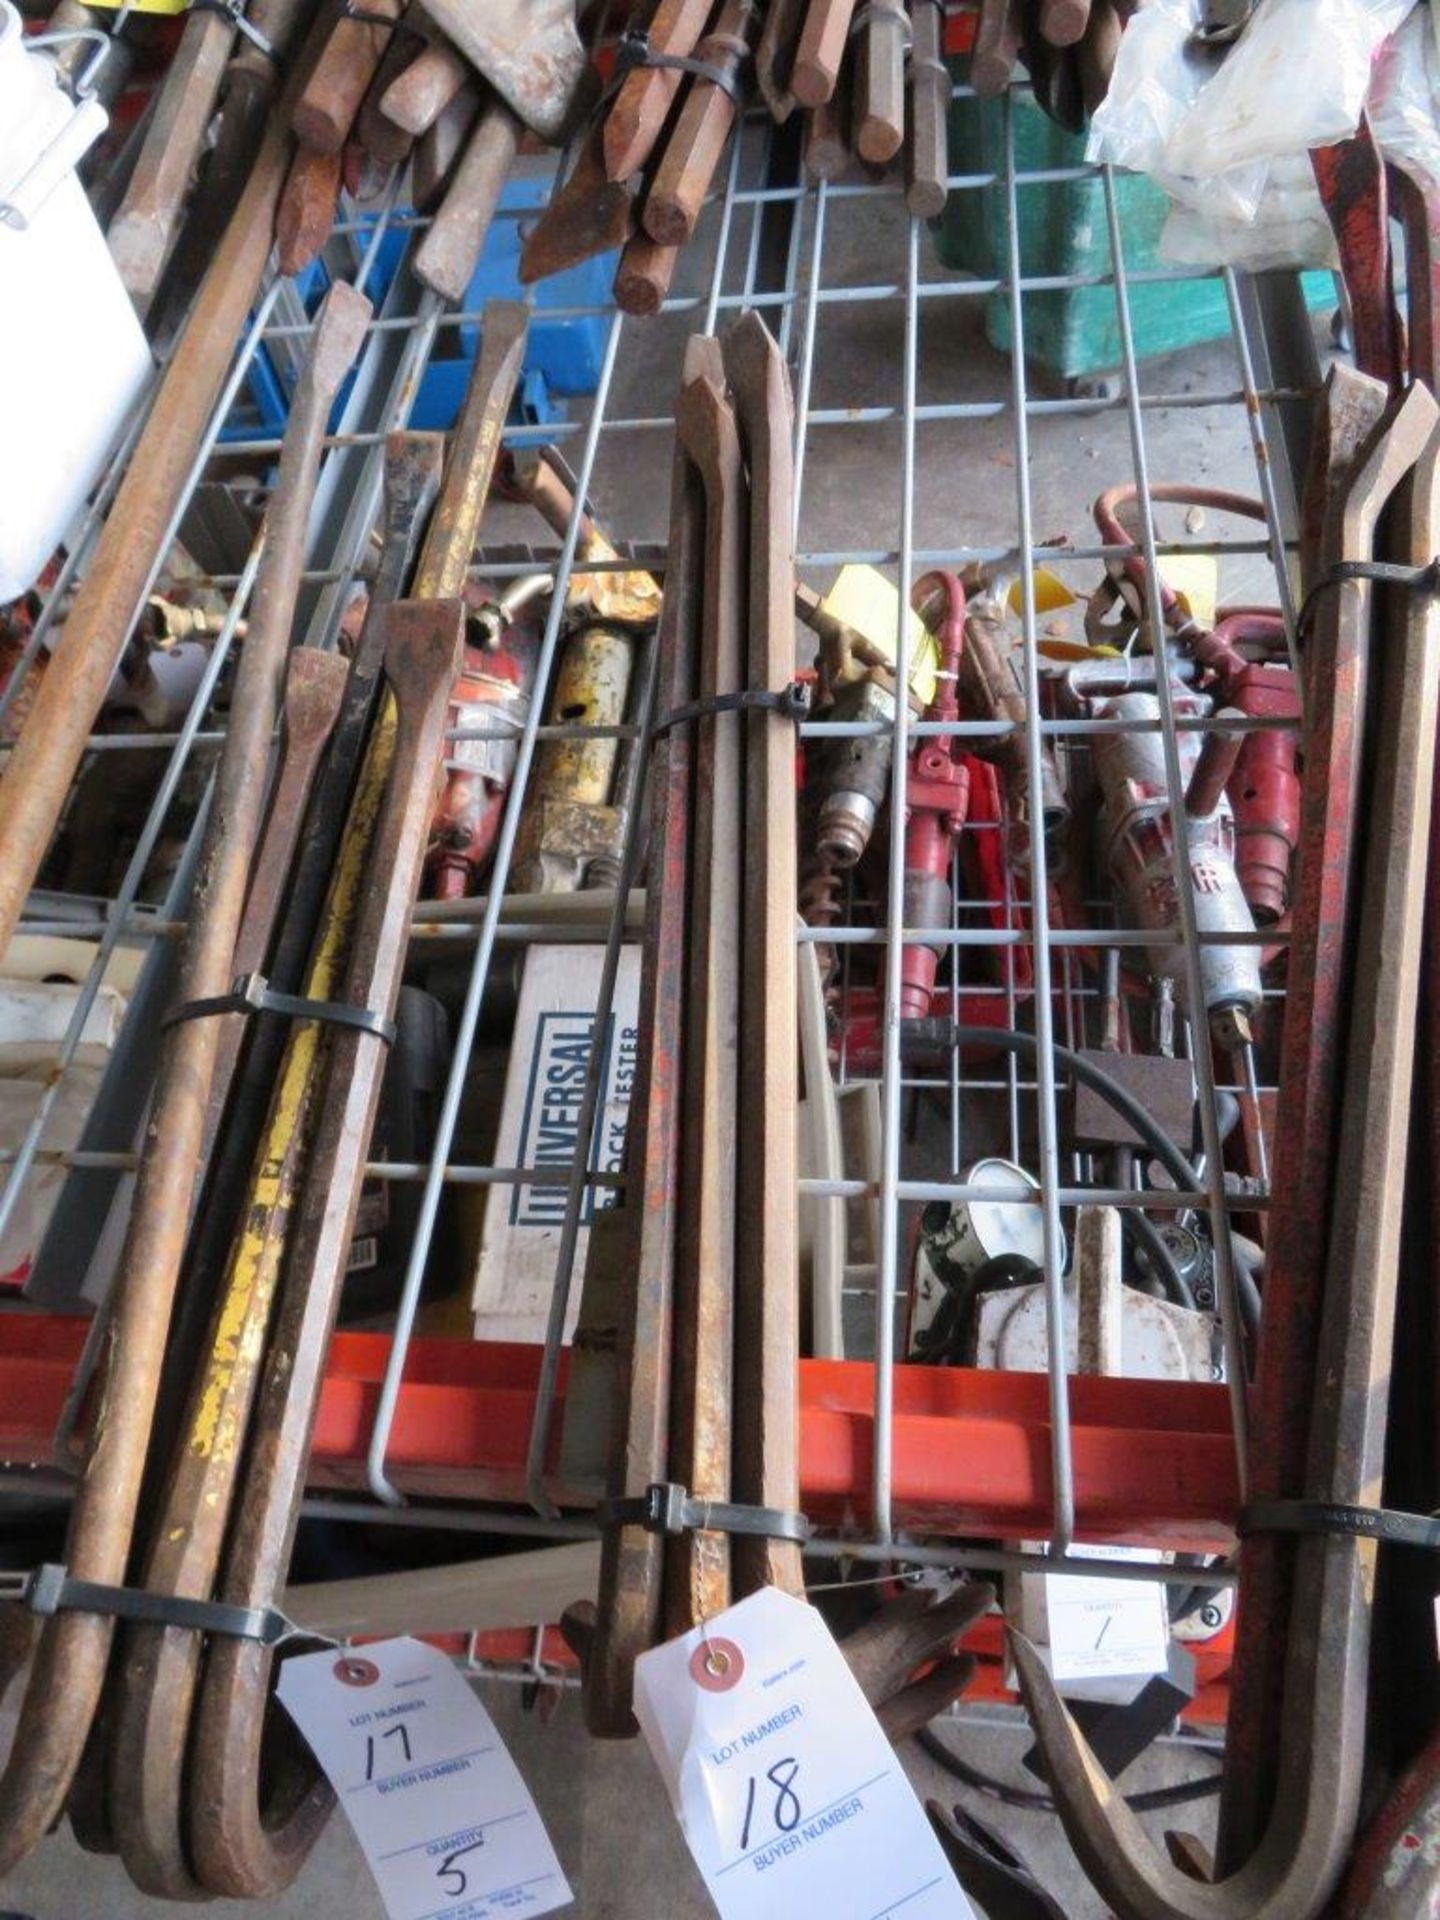 Lot 18 - (5) Crowbars, Pry Bars, assorted